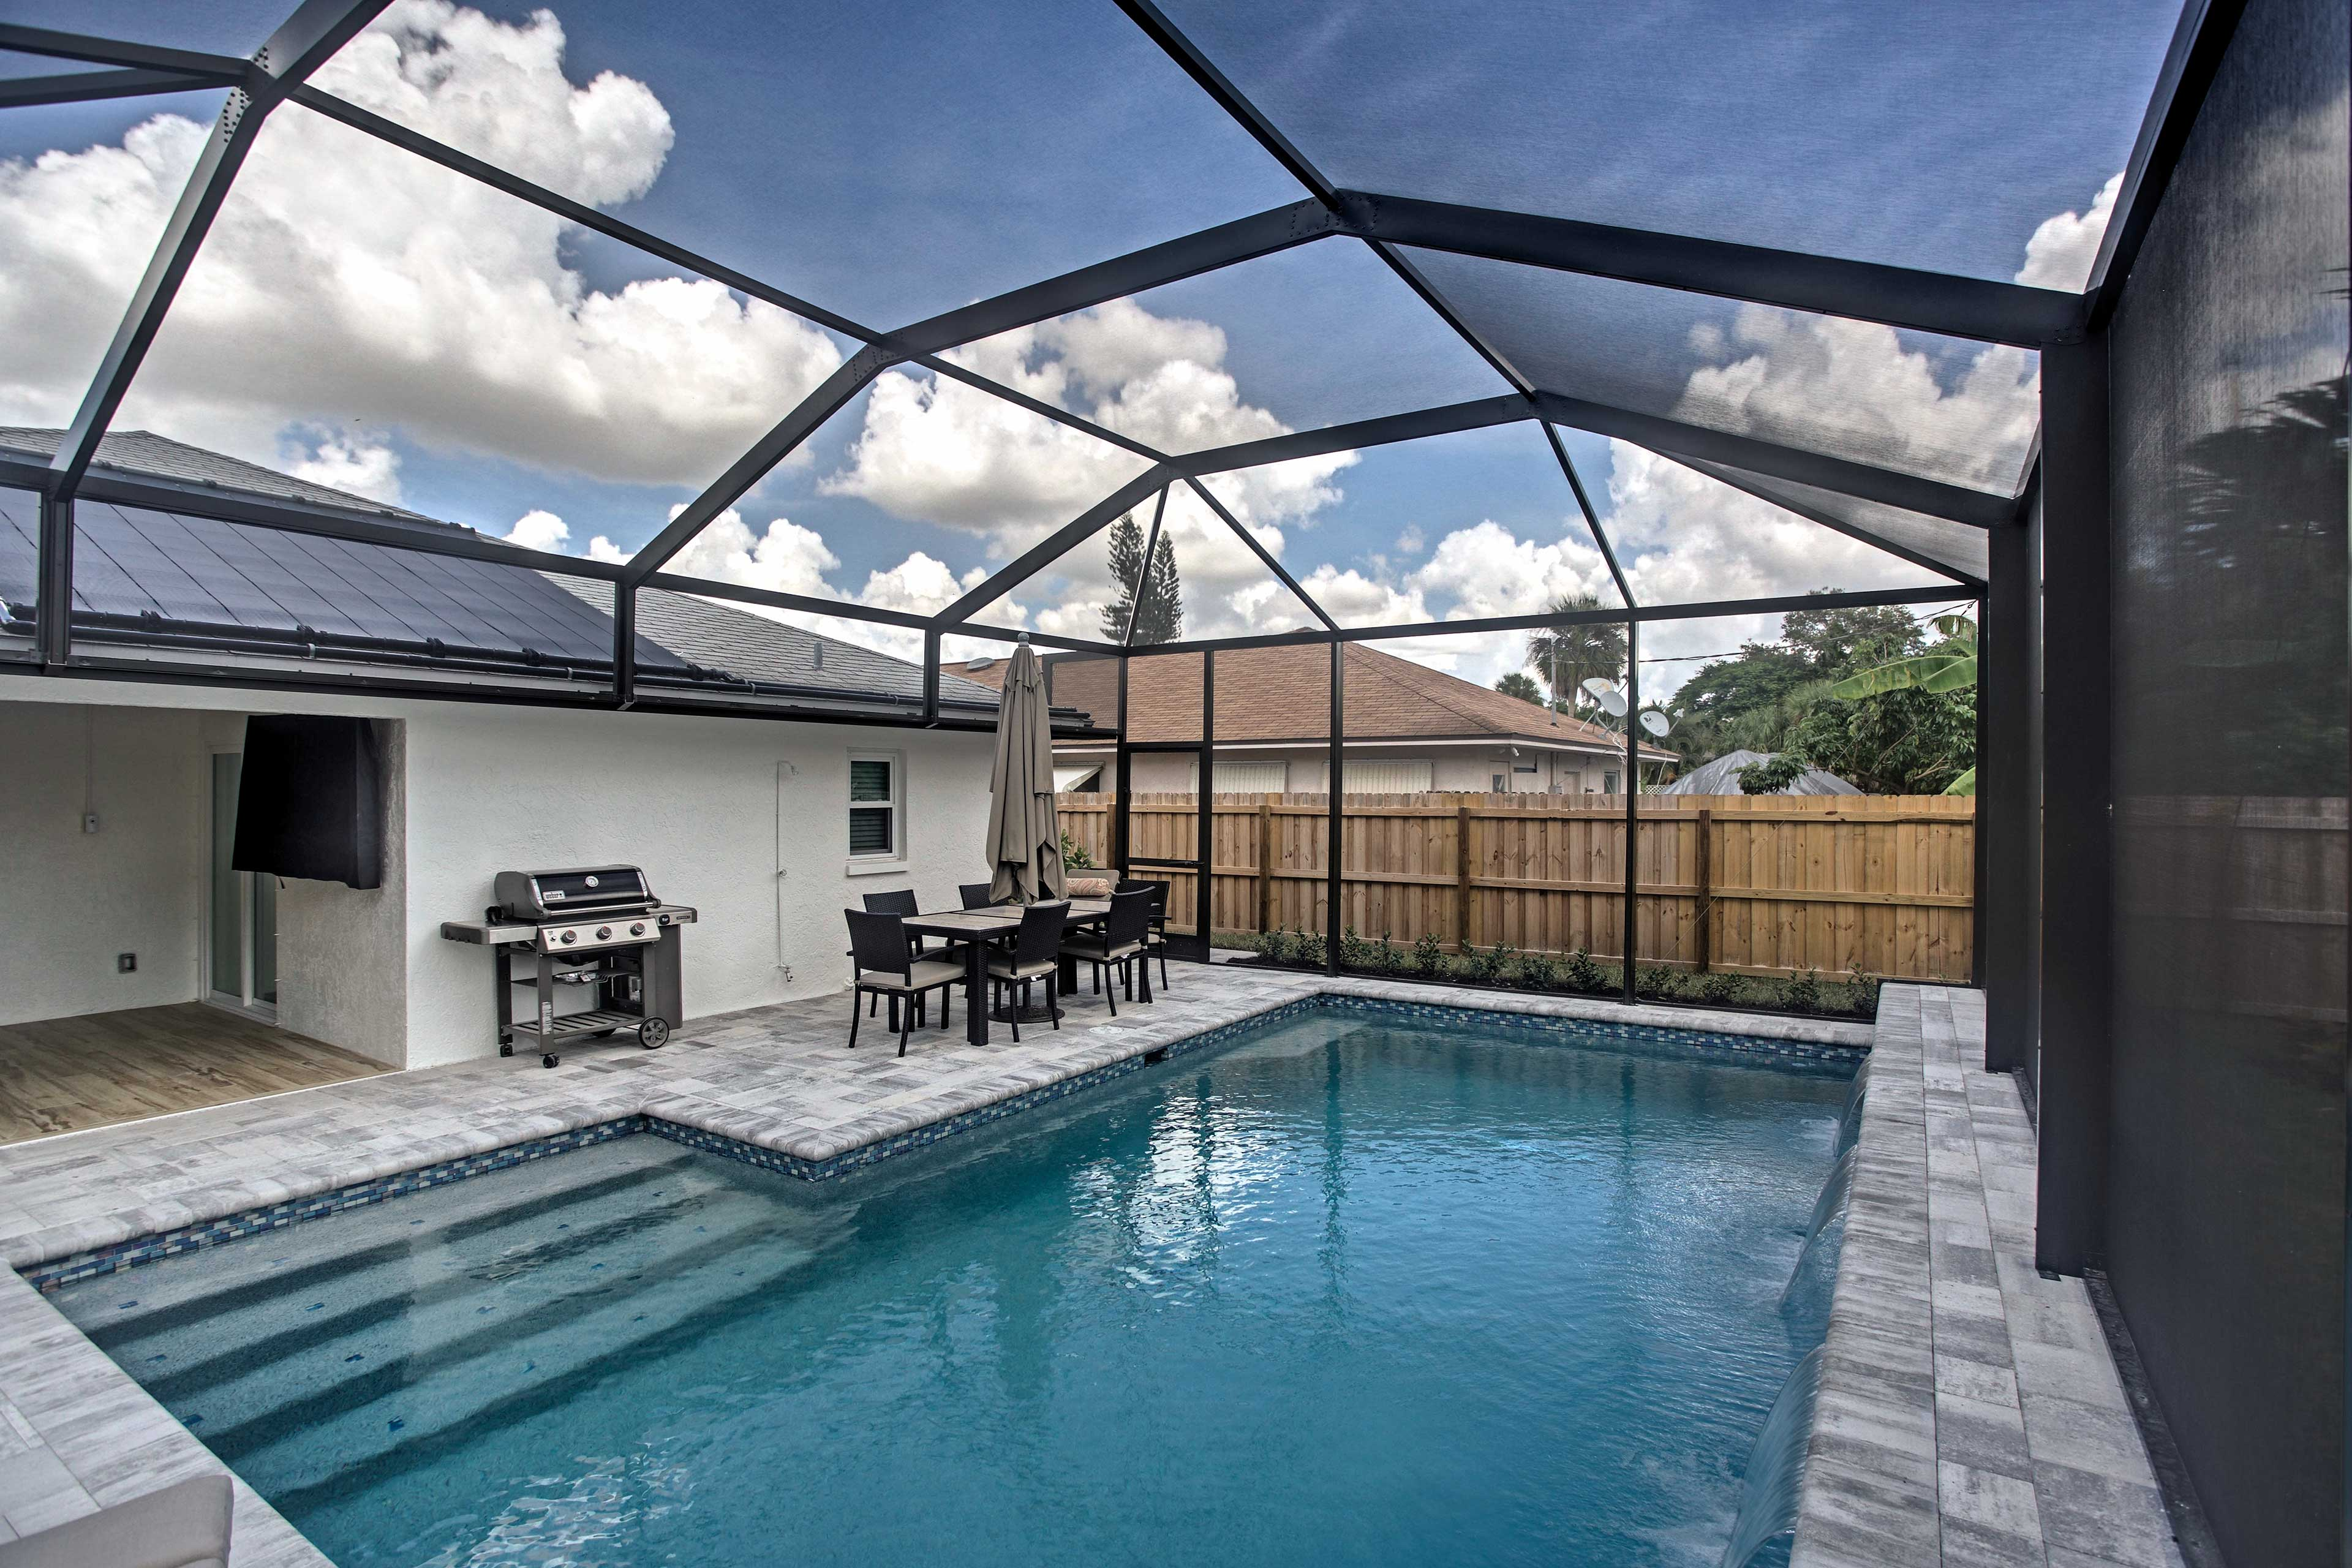 Take a dip in the pool before grilling up a barbecue dinner!